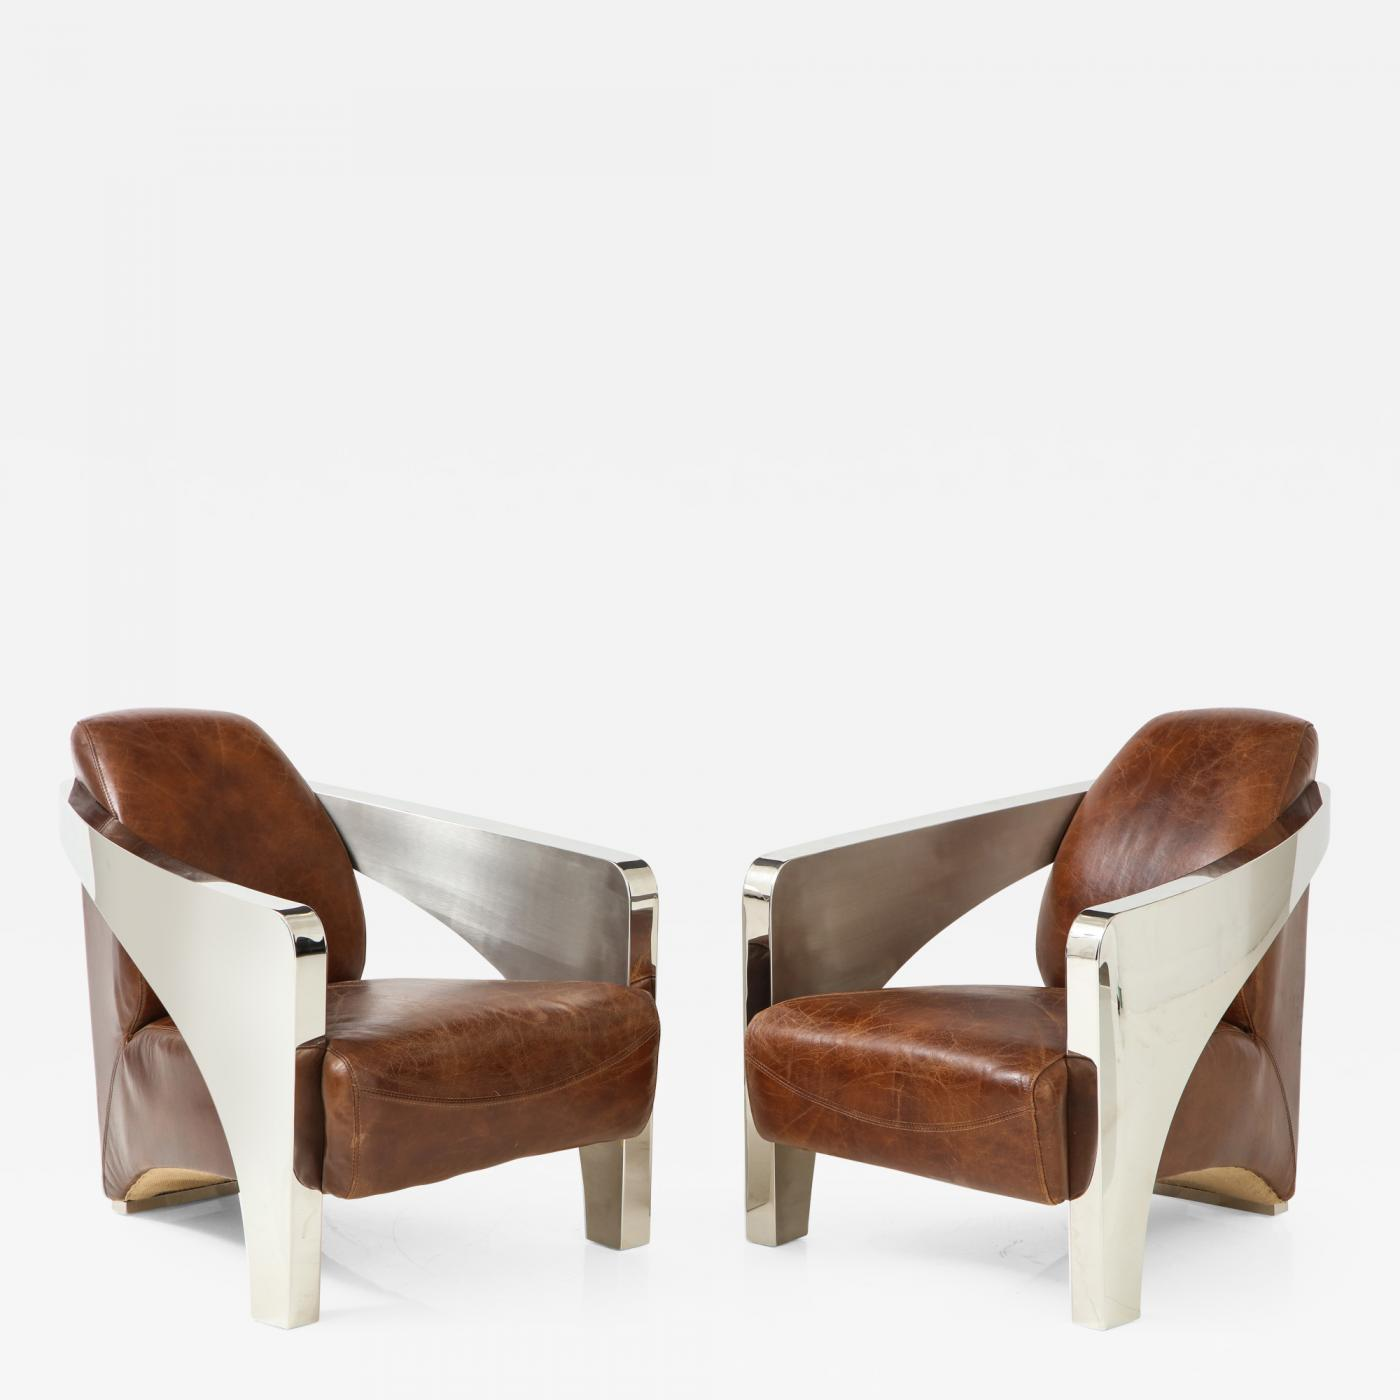 Pair Of French Art Deco Chrome And Leather Aviator Chairs